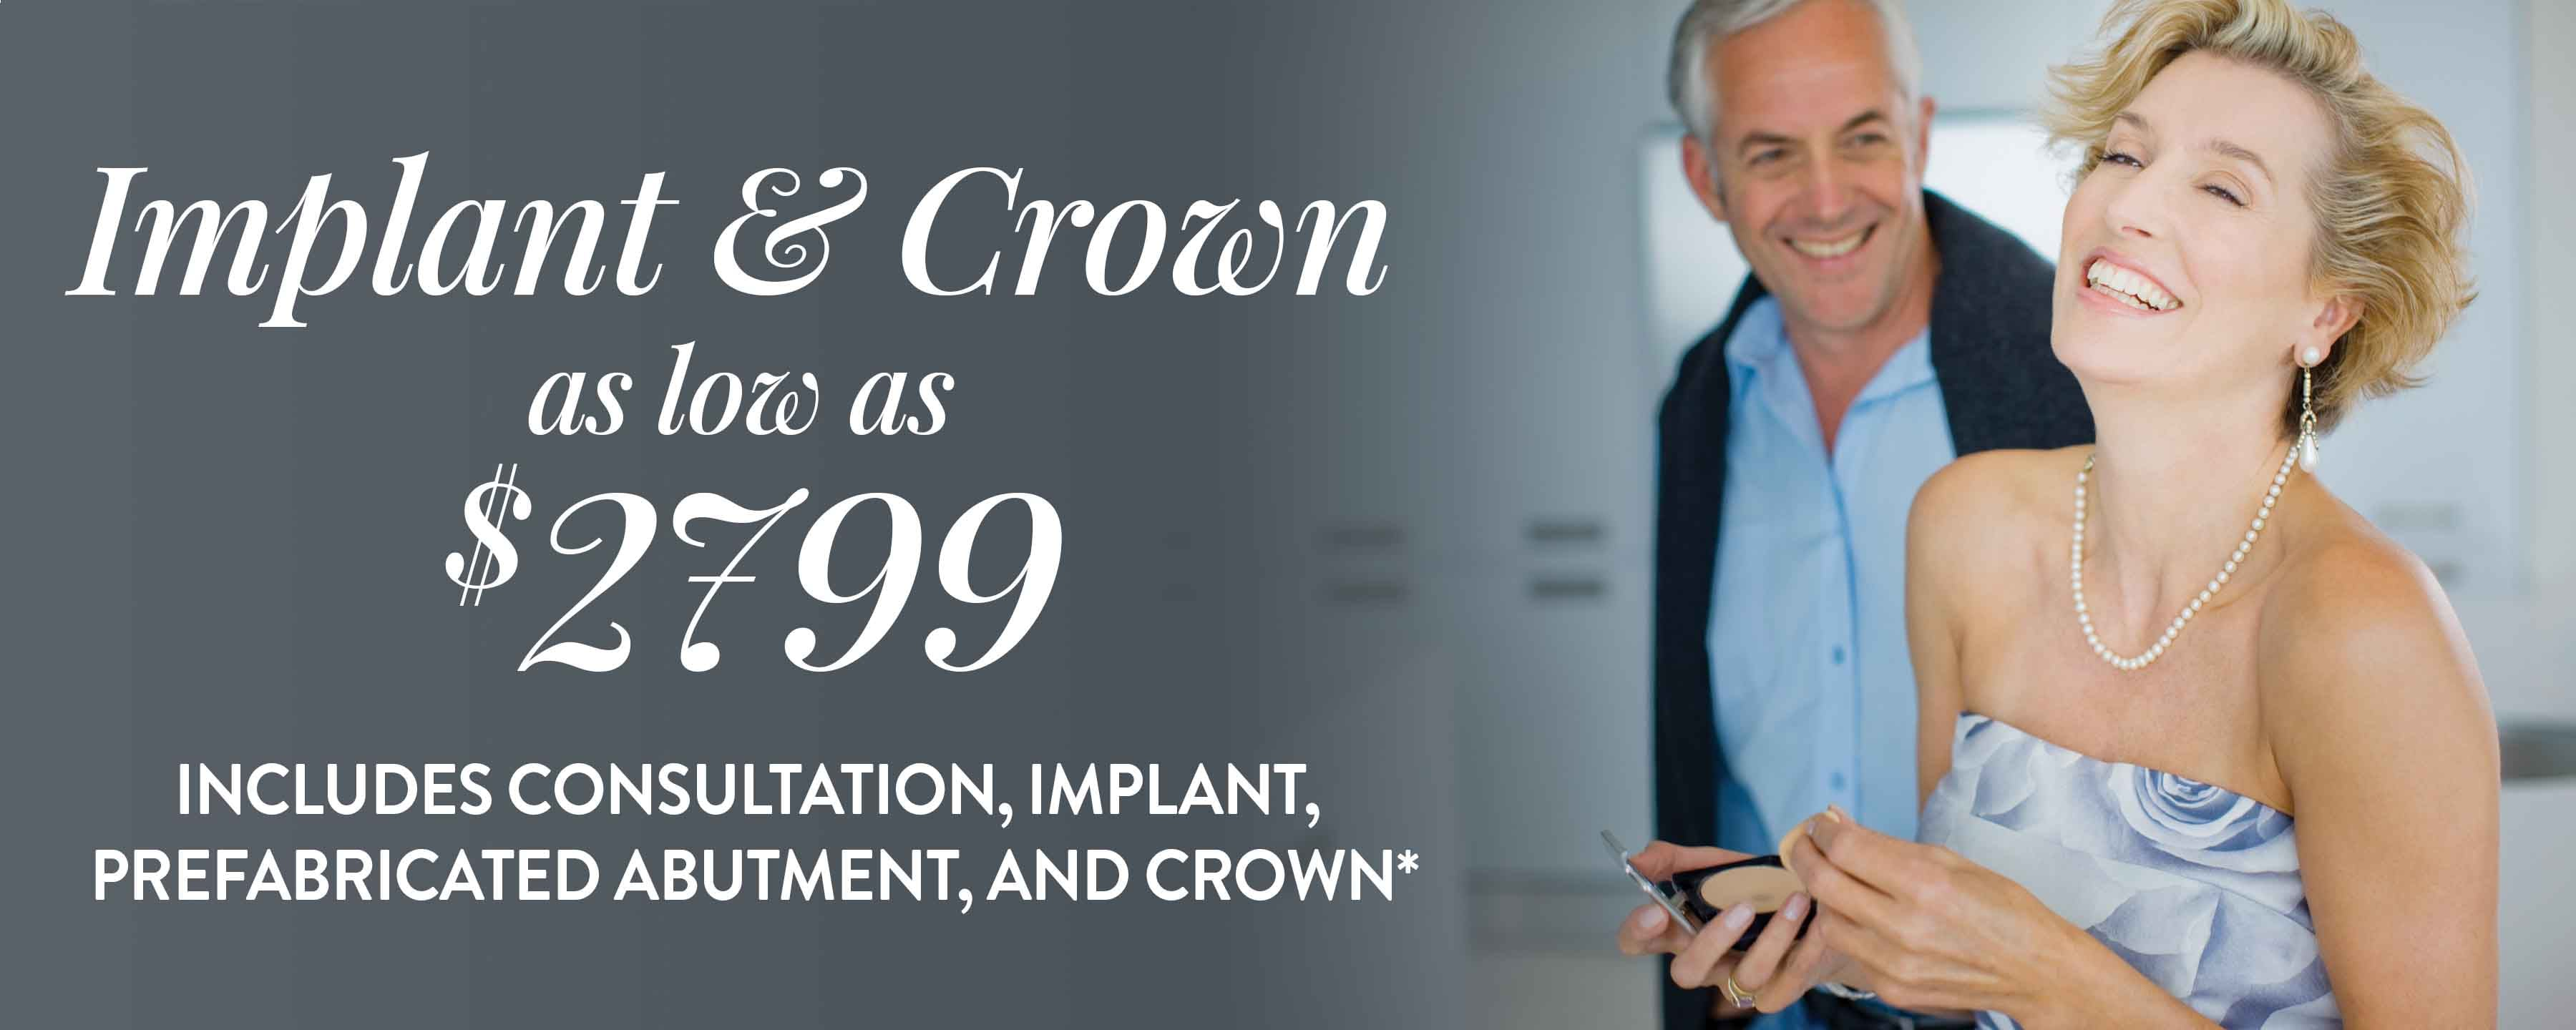 Implant and Crown as low as $2,799*